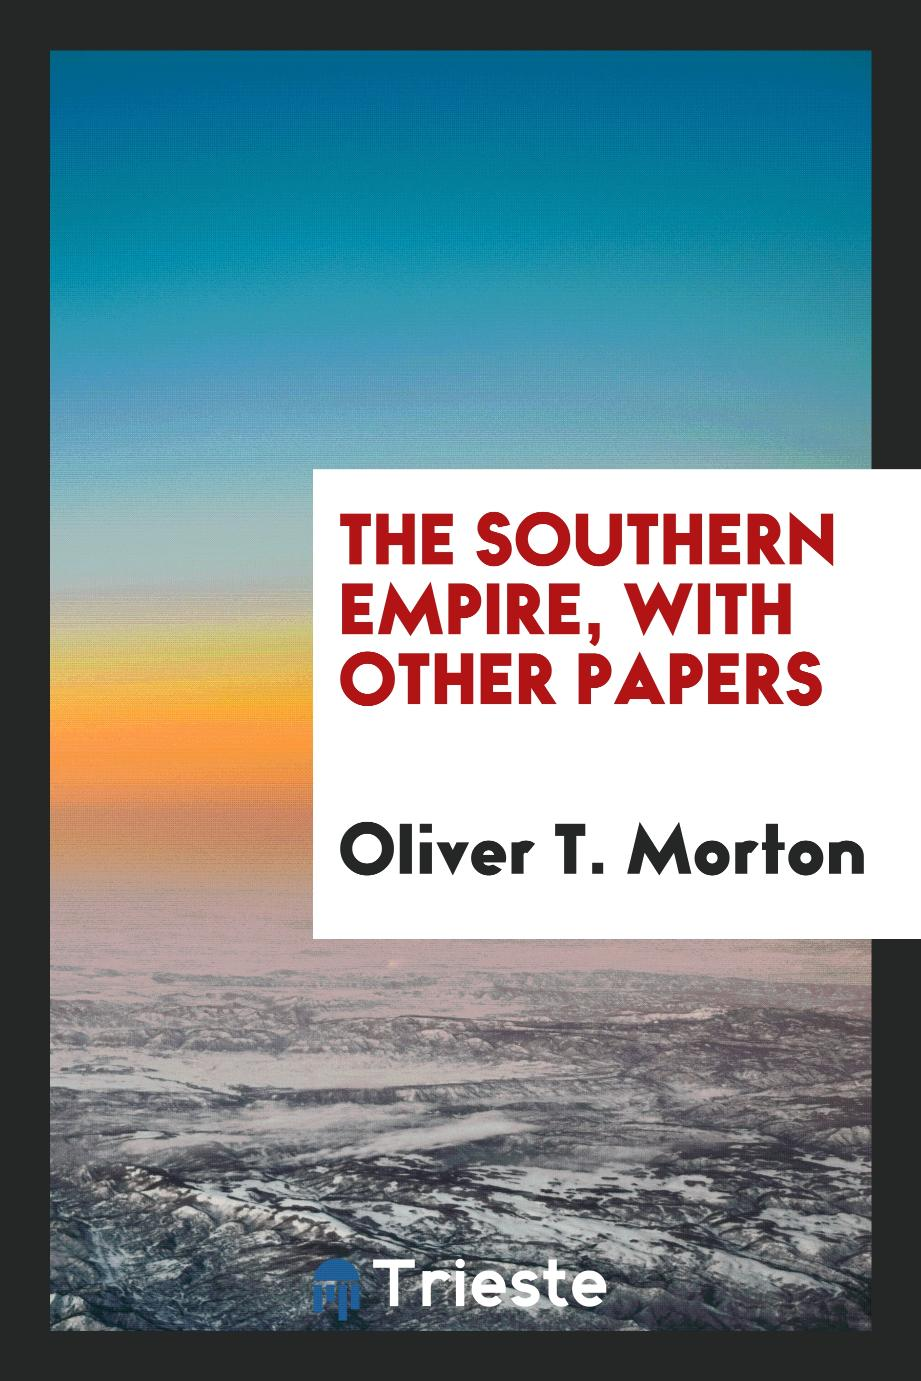 Oliver T. Morton - The southern empire, with other papers